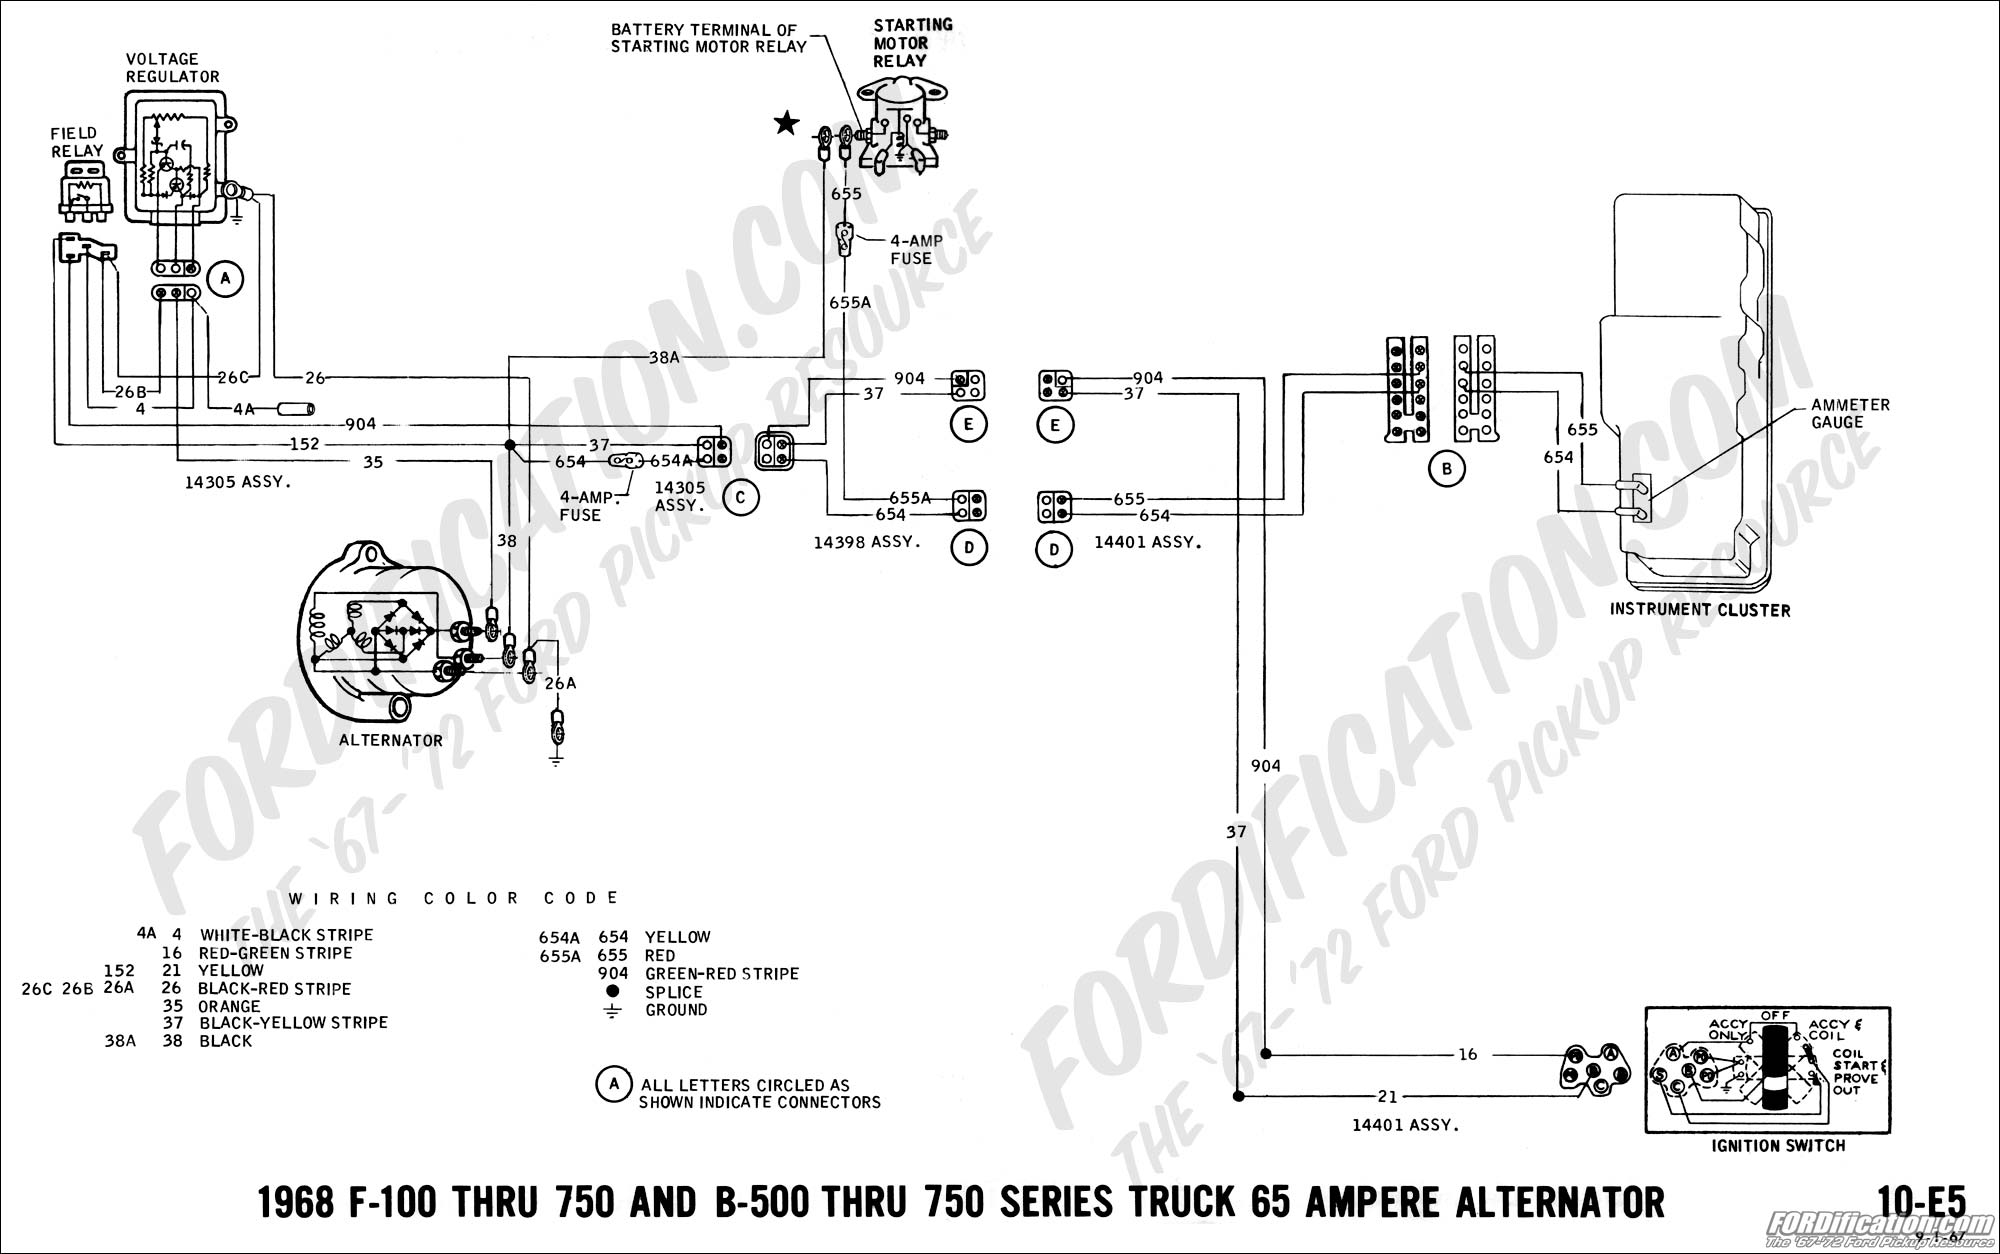 68 07 1968 ford f100 wiring diagram 1965 ford f100 alternator wiring 81 Dodge Alternator Diagram at creativeand.co